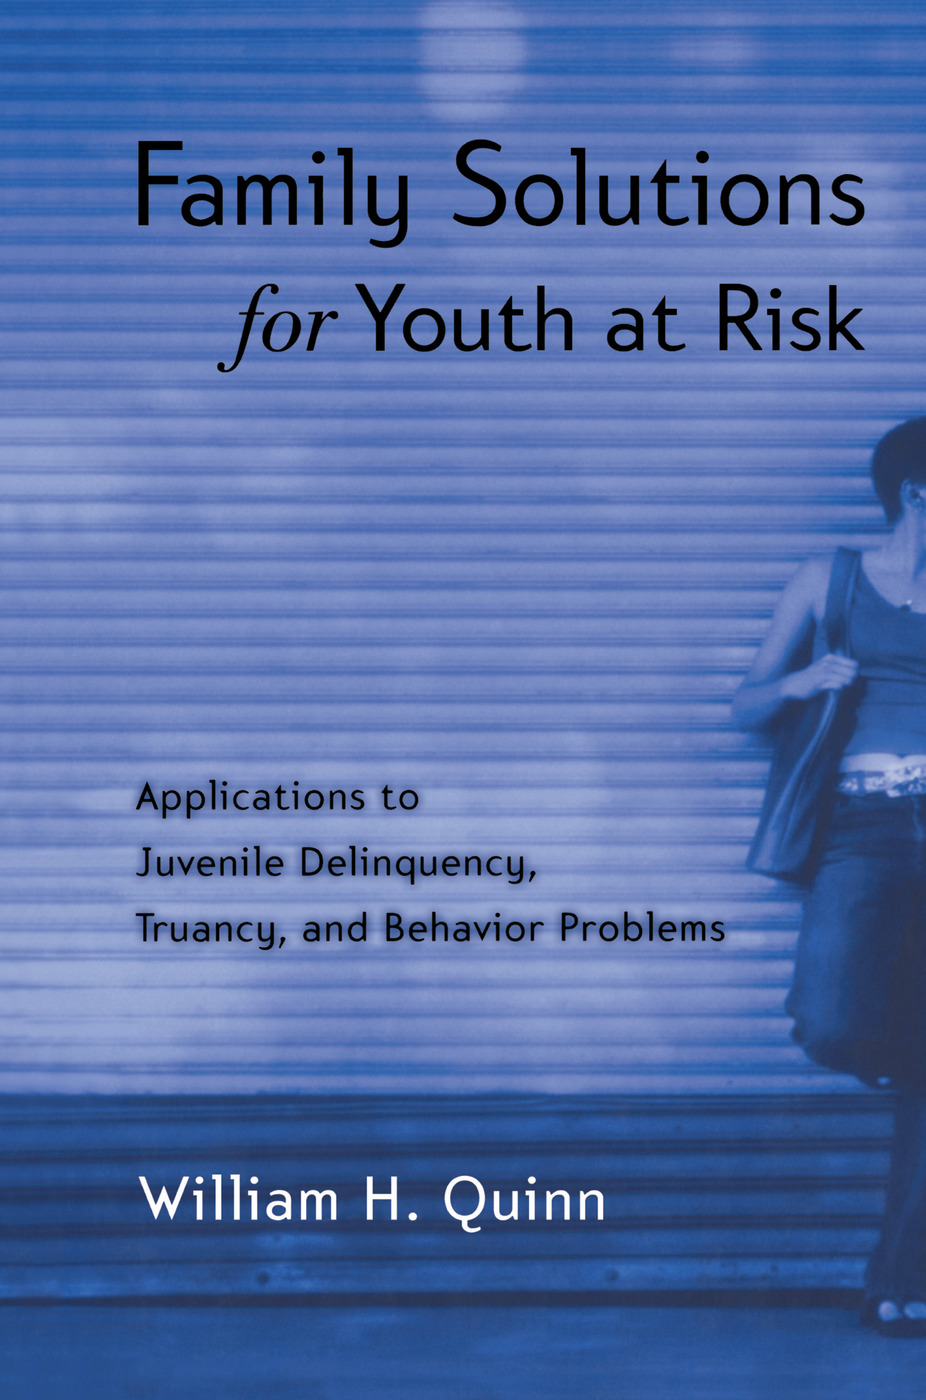 Family Solutions for Youth at Risk: Applications to Juvenile Delinquency, Truancy, and Behavior Problems, 1st Edition (Paperback) book cover